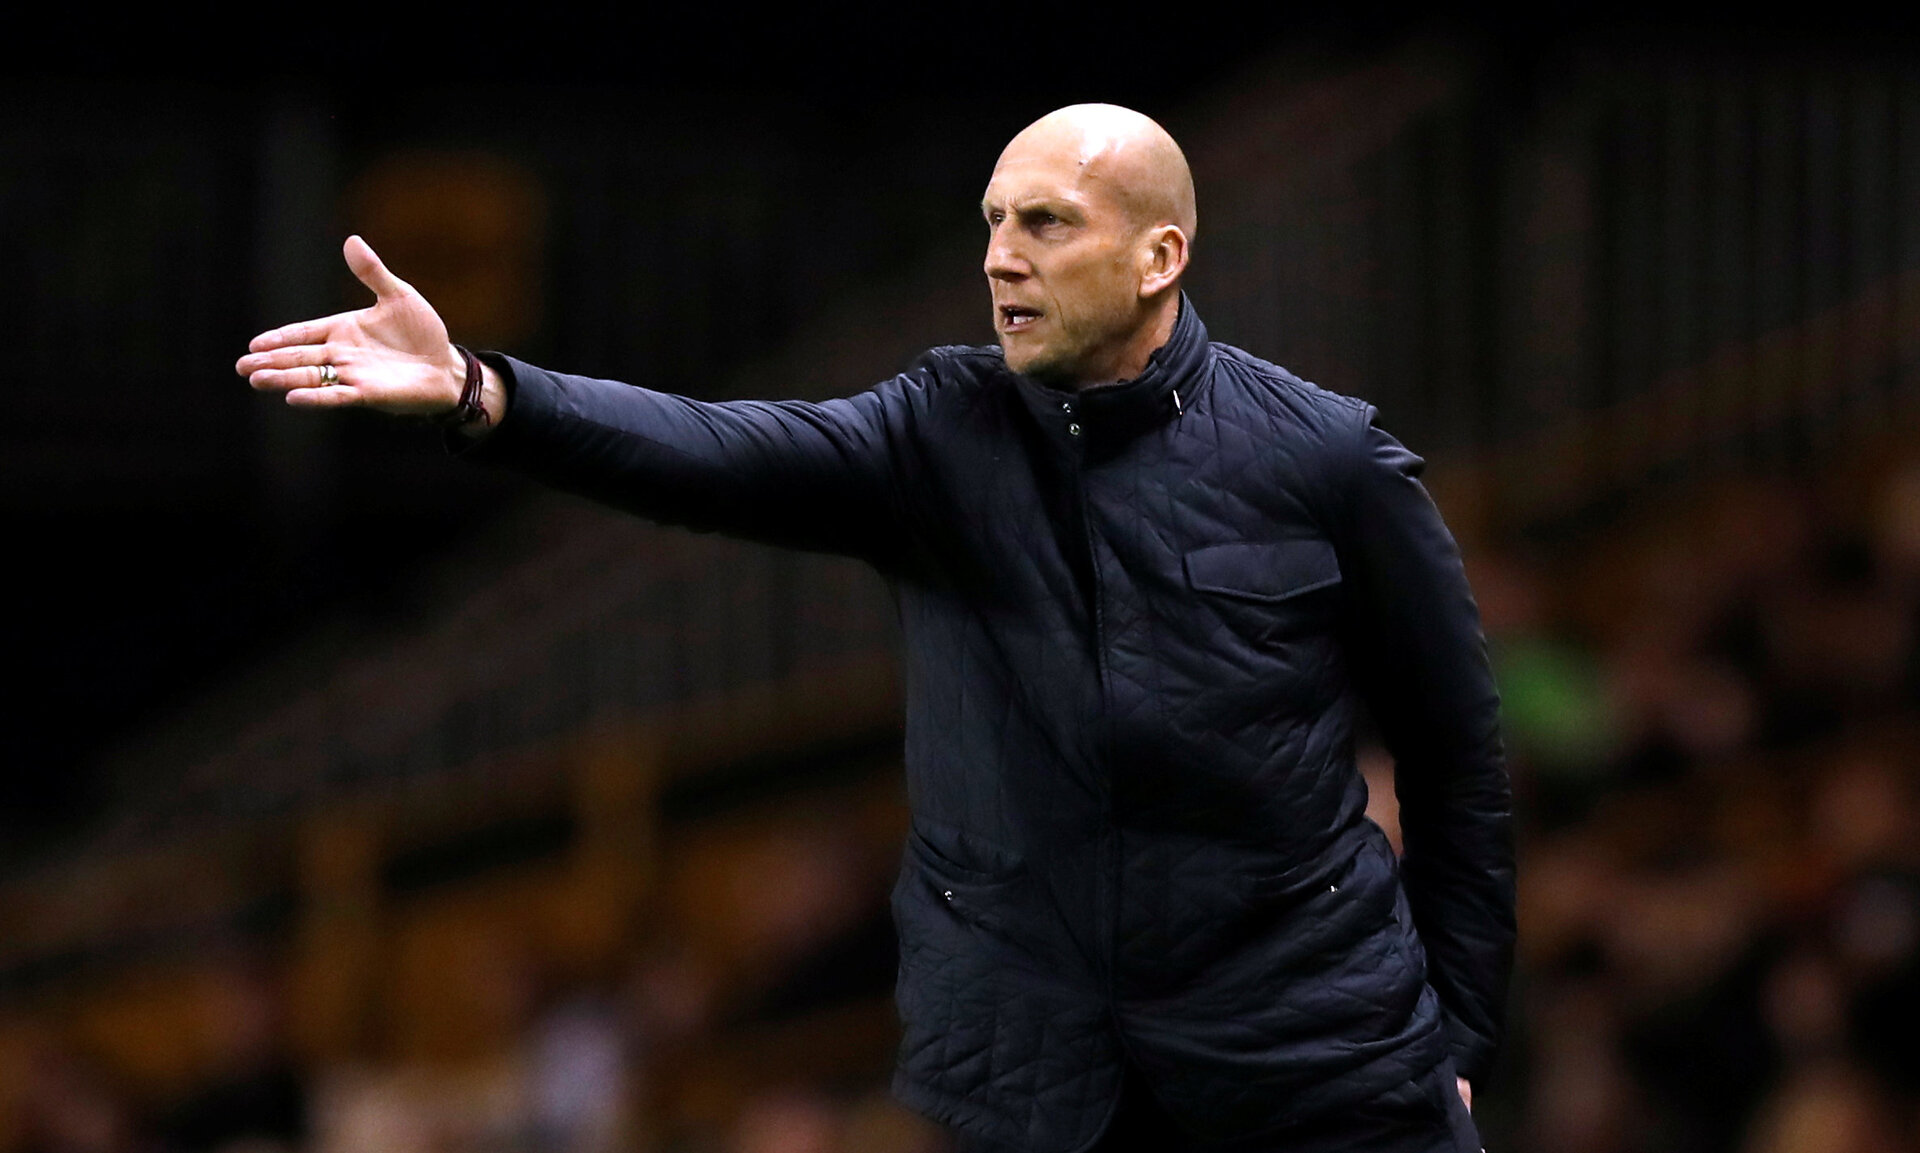 """Soccer Football - Championship - Wolverhampton Wanderers vs Reading - Molineux Stadium, Wolverhampton, Britain - March 13, 2018   Reading manager Jaap Stam gestures   Action Images/Peter Cziborra    EDITORIAL USE ONLY. No use with unauthorized audio, video, data, fixture lists, club/league logos or """"live"""" services. Online in-match use limited to 75 images, no video emulation. No use in betting, games or single club/league/player publications. Please contact your account representative for further details."""